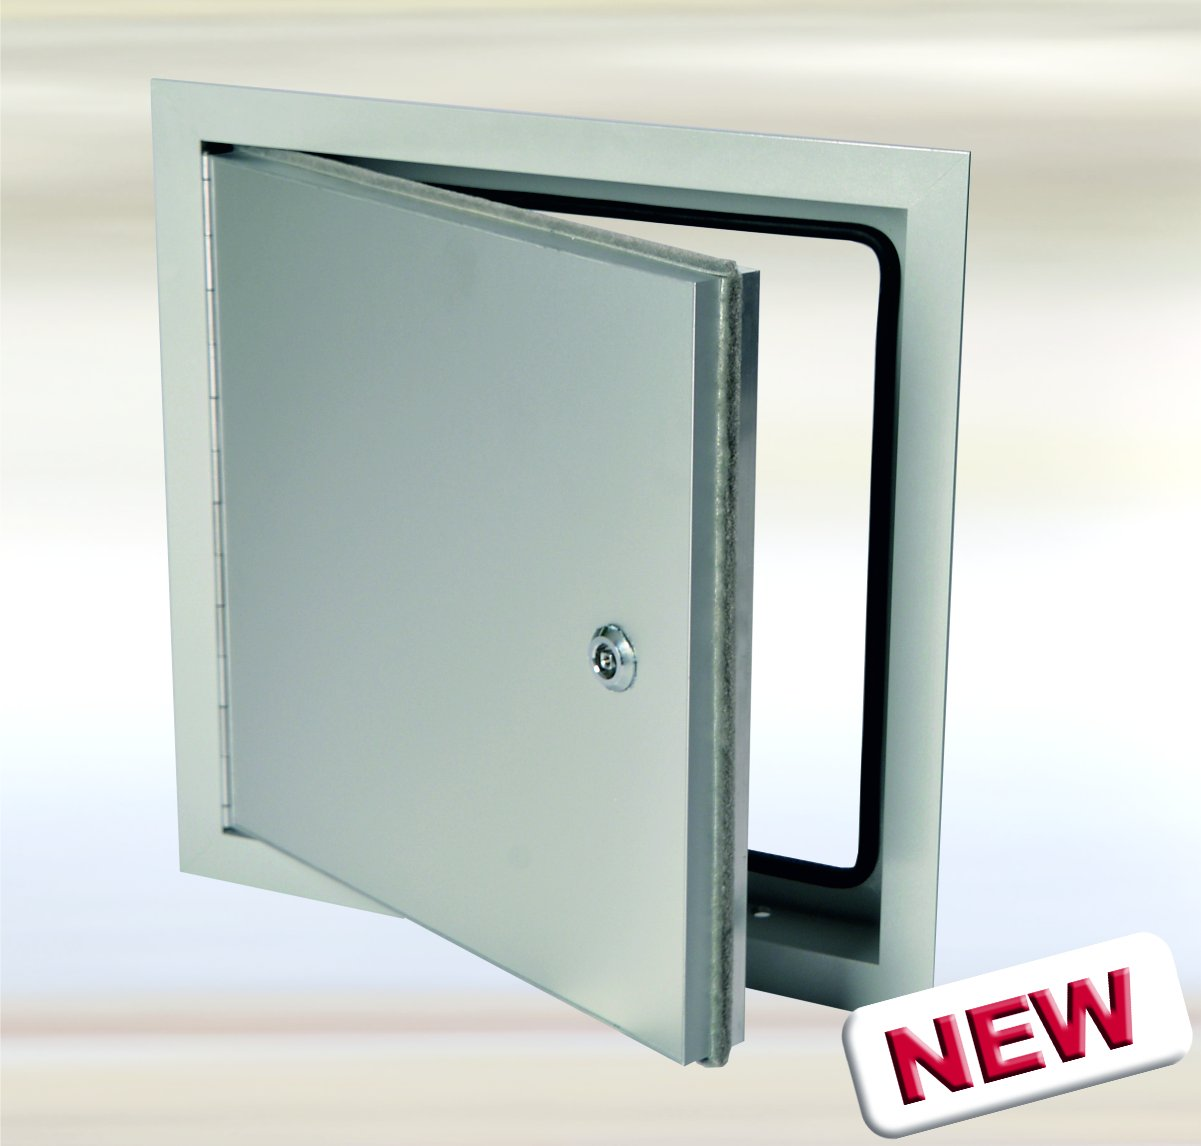 Exterior Access Door 12 x 12 System EXT - Weather resistant / Aluminum door equipped with a stainless steel piano hinge